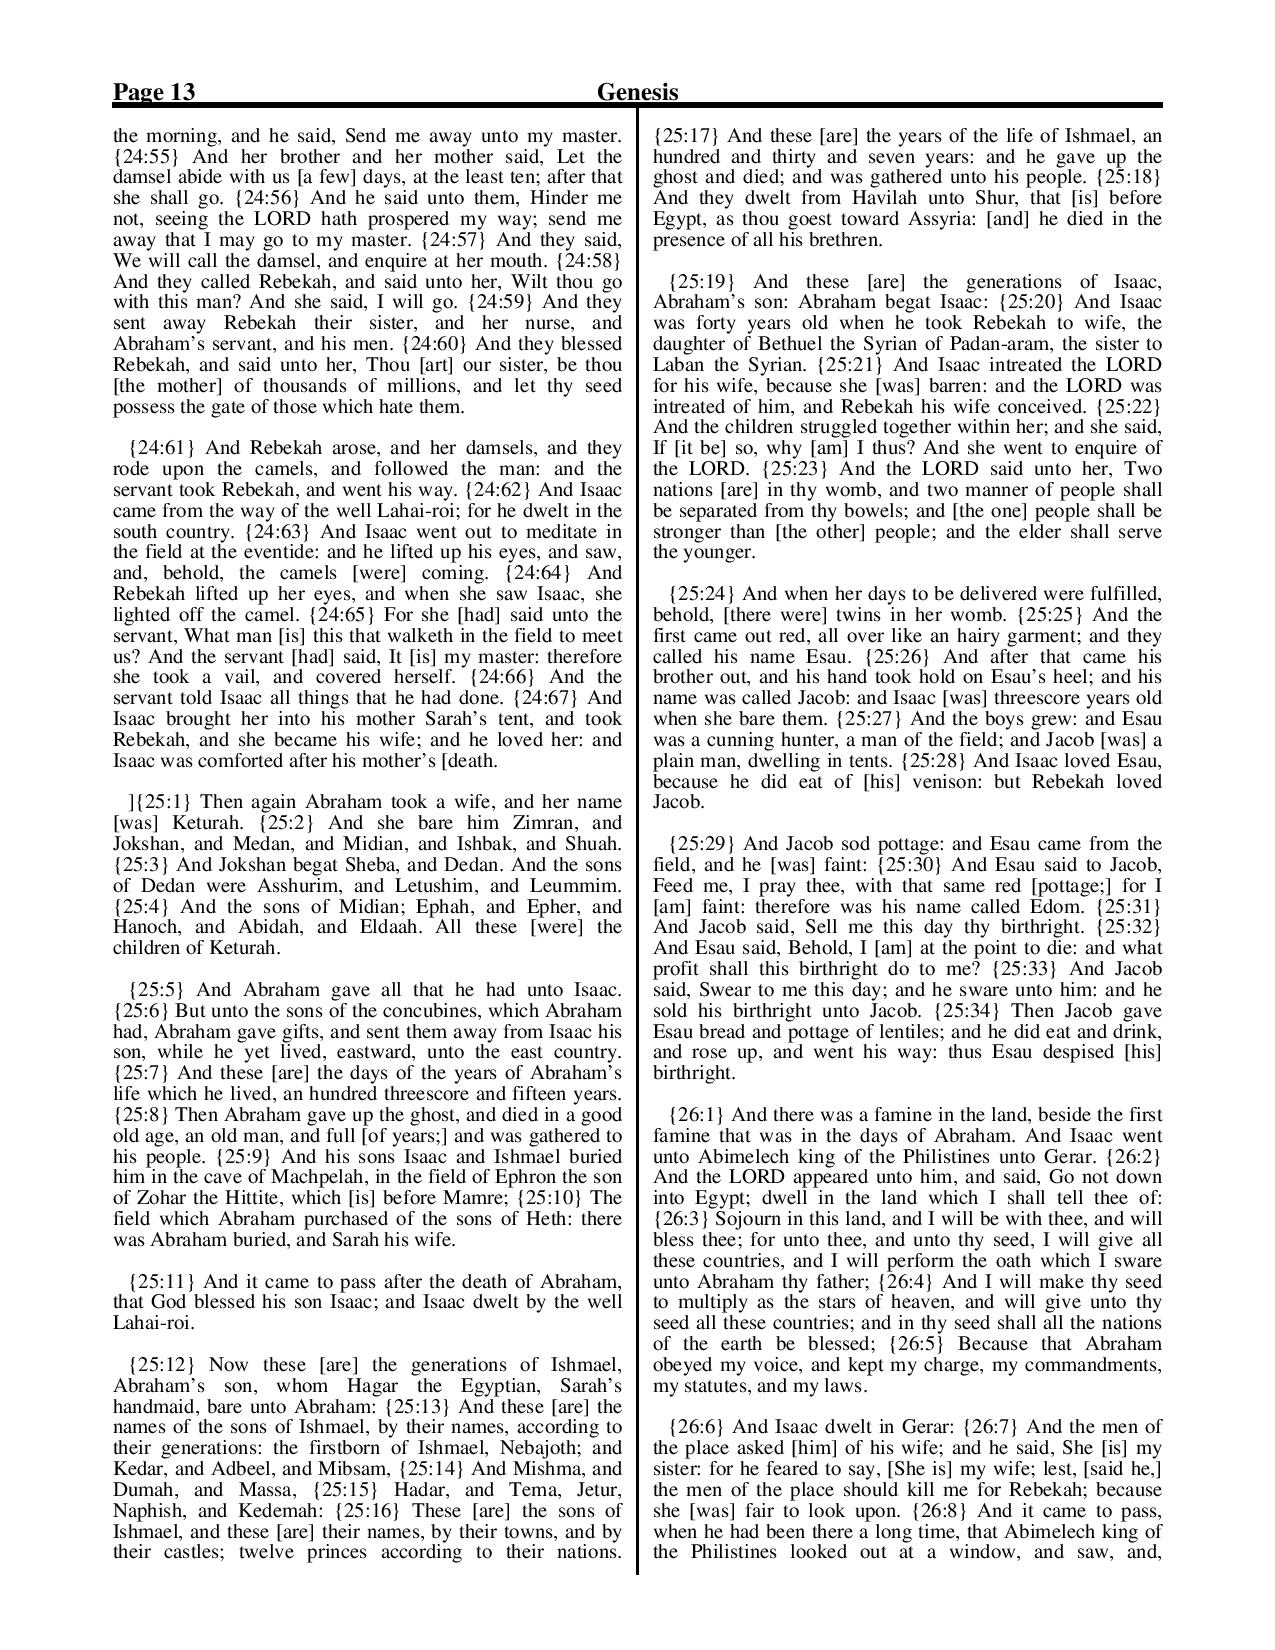 King-James-Bible-KJV-Bible-PDF-page-034